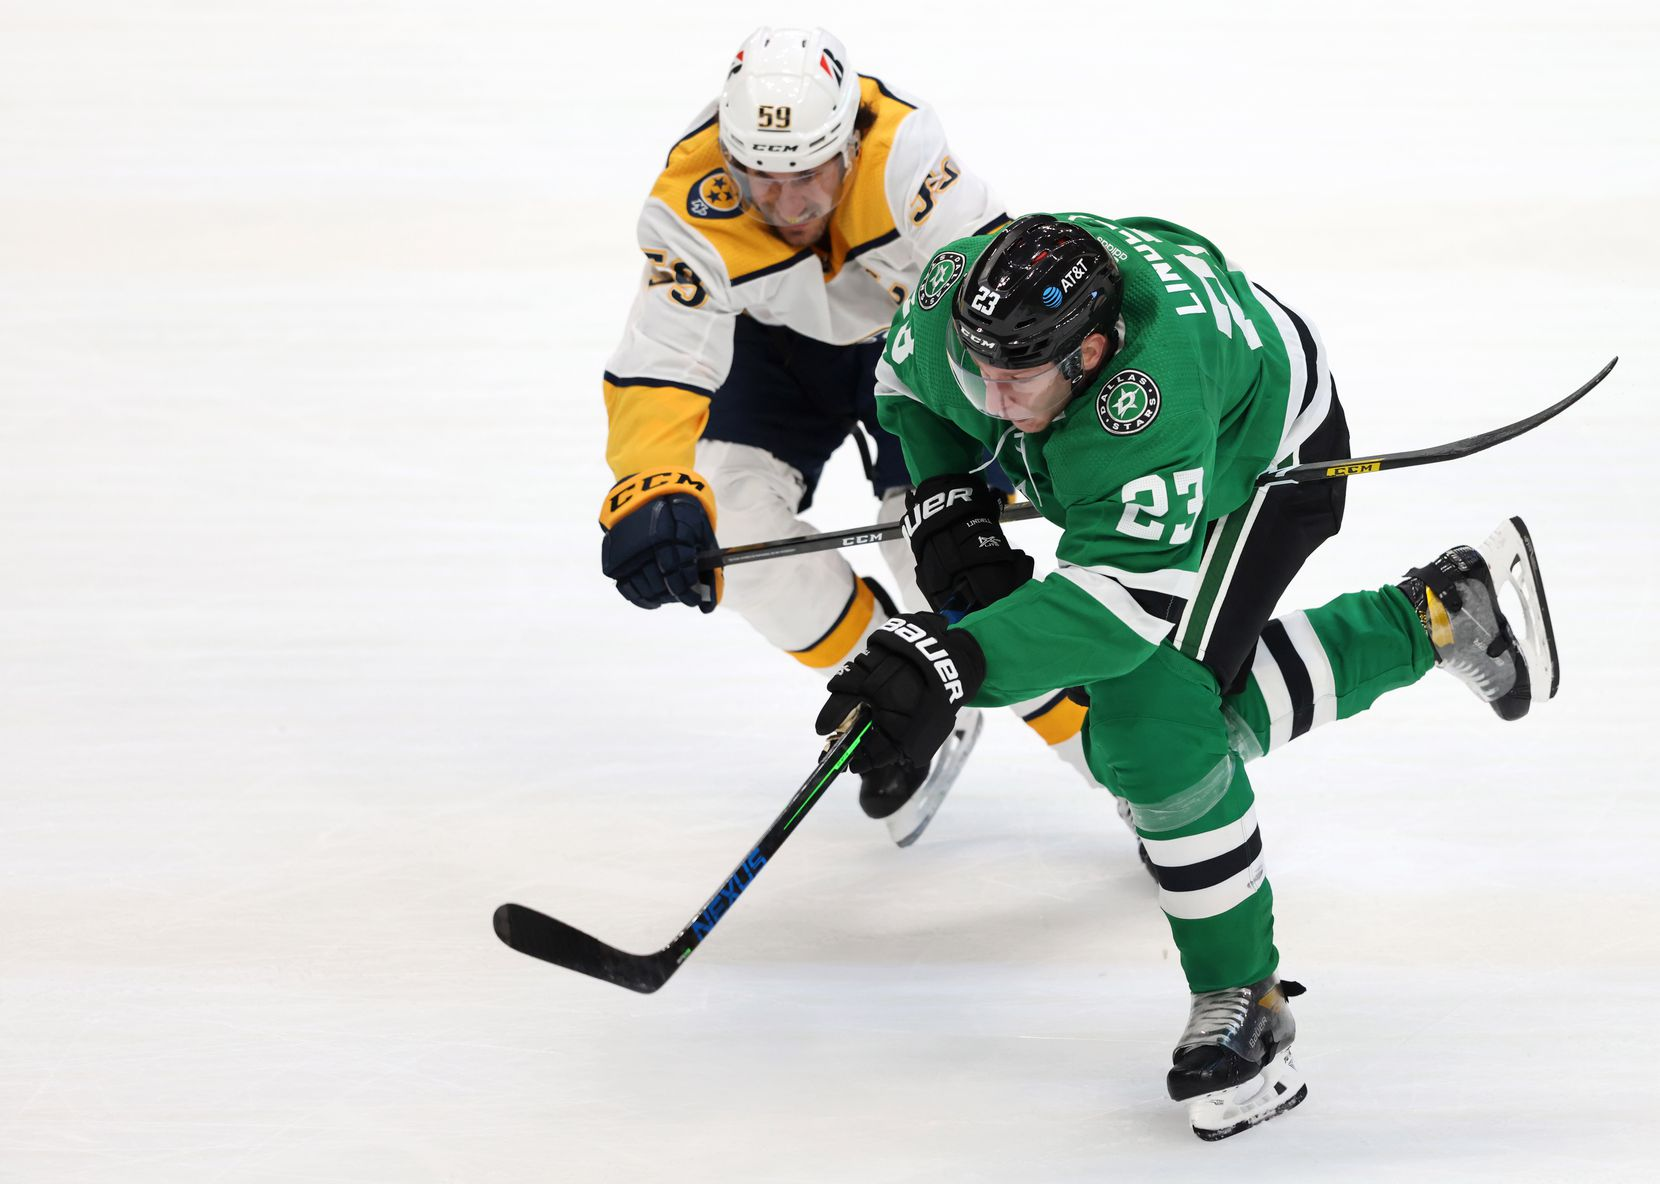 Dallas Stars defenseman Esa Lindell (23) races towards the puck as he is defended by Nashville Predators defenseman Roman Josi (59) during the second period of play in the Stars home opener at American Airlines Center on Friday, January 22, 2021in Dallas. (Vernon Bryant/The Dallas Morning News)